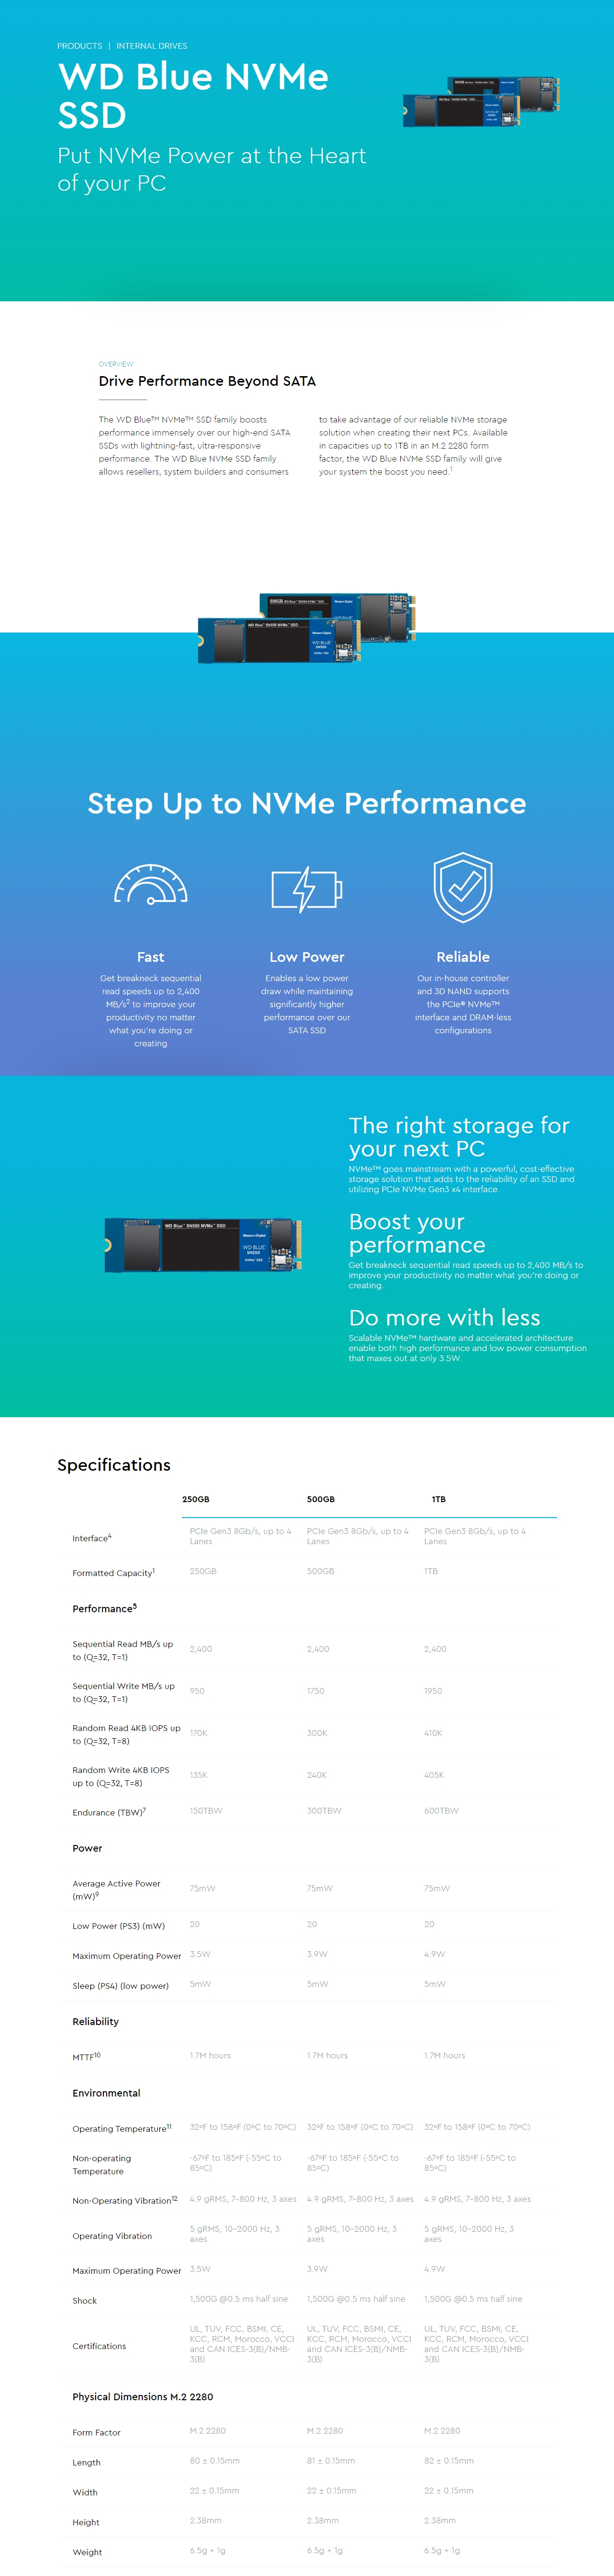 A large marketing image providing additional information about the product WD Blue SN550 1TB NVMe M.2 SSD - Additional alt info not provided